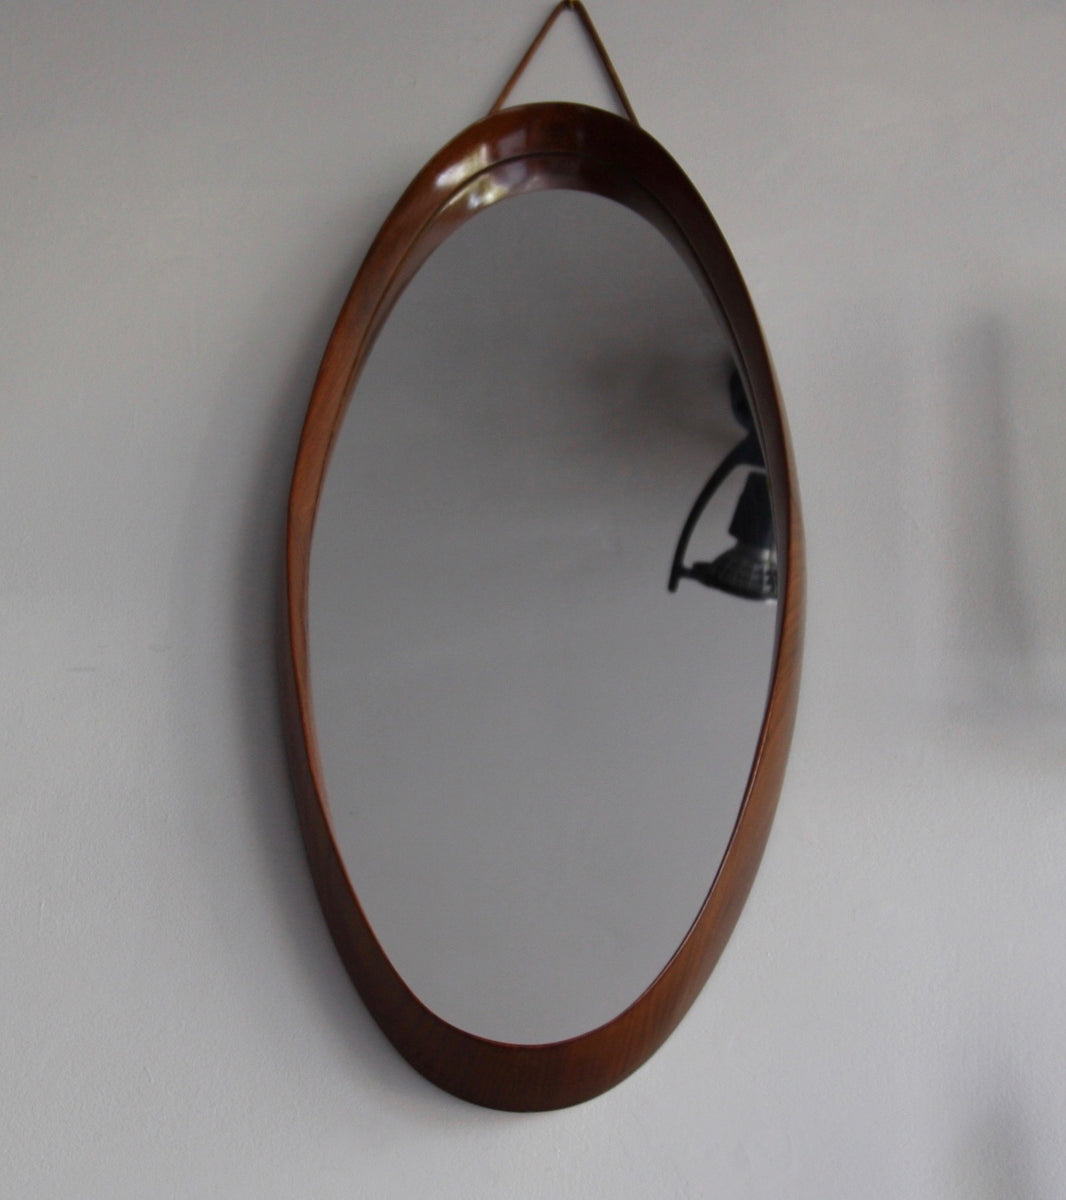 Scandinavian Teak Oval Mirror with Leather Denmark C. 1950 - Image 5